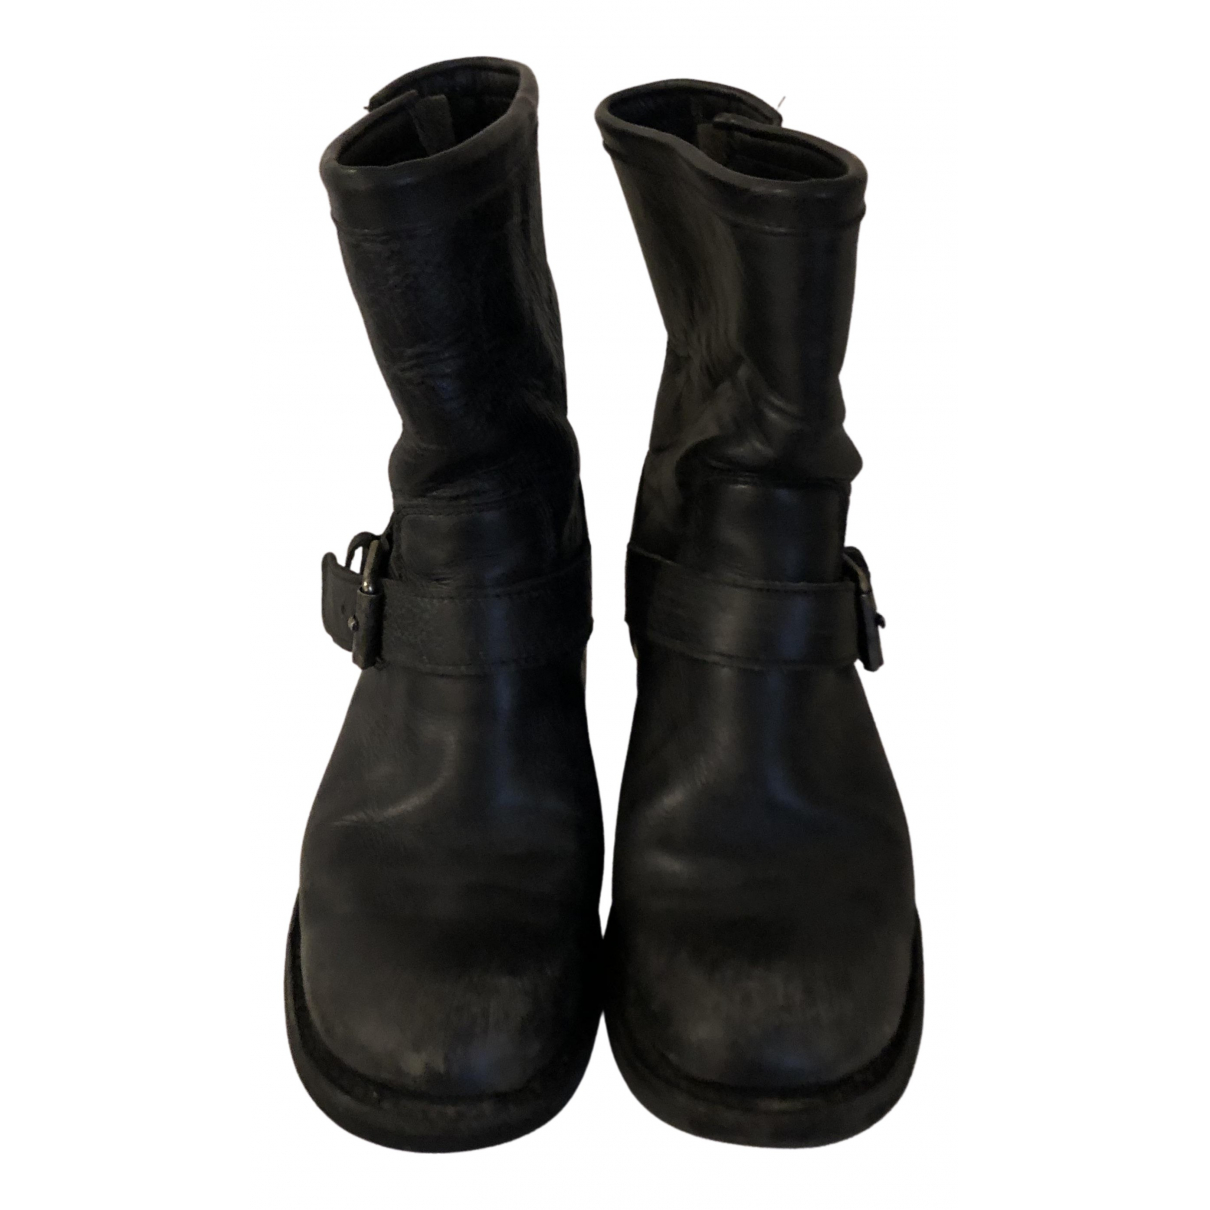 Ash N Black Leather Boots for Women 37 EU